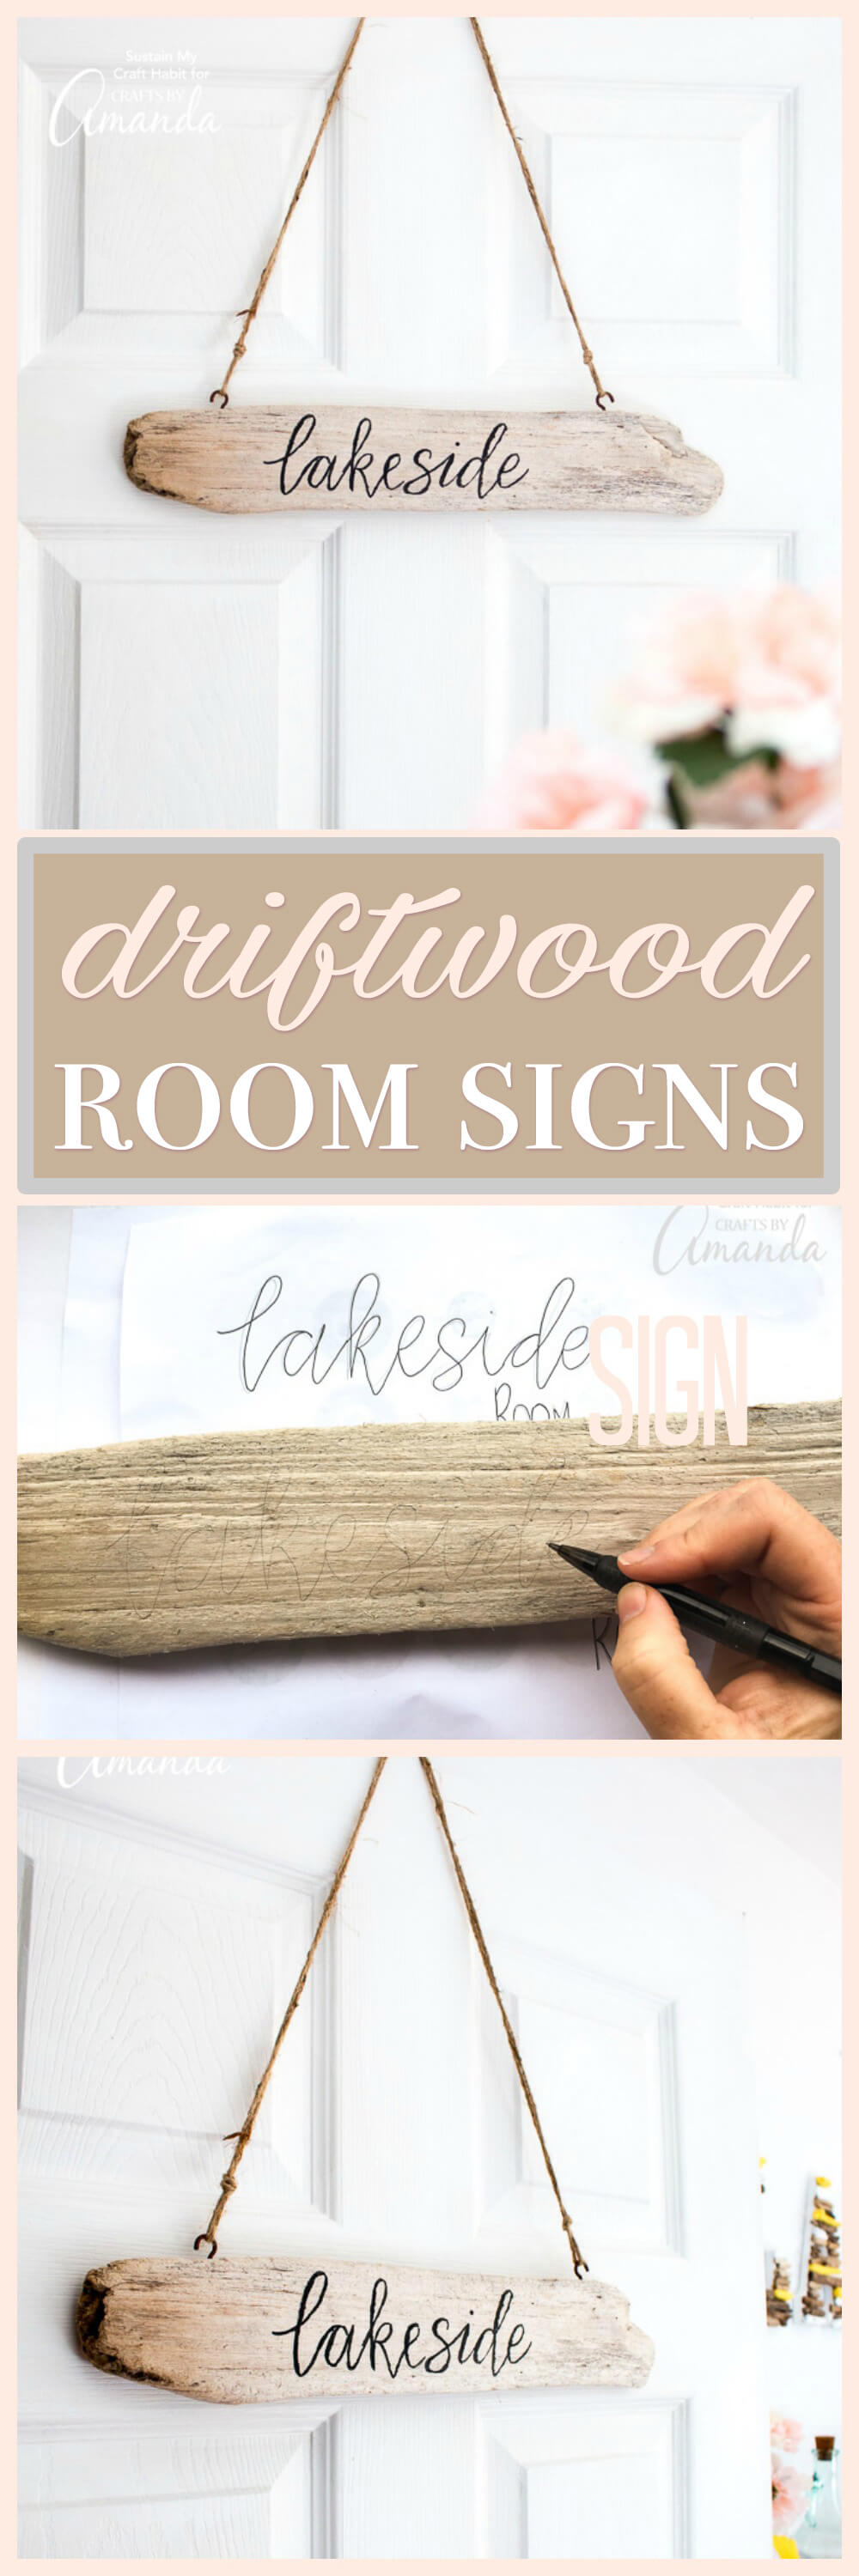 Make Your Own Driftwood Room Signs